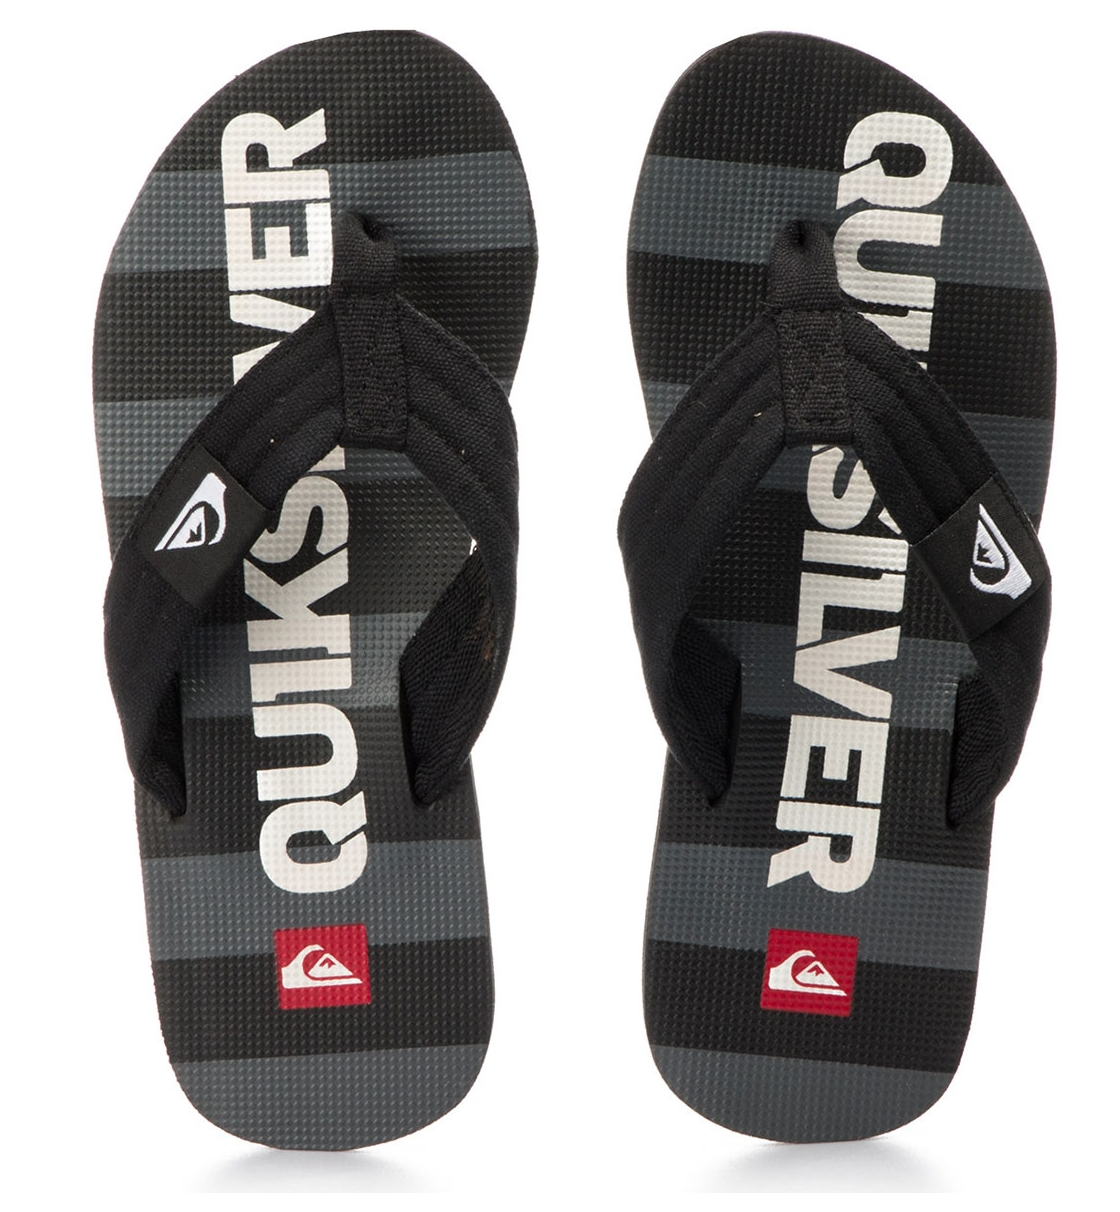 Quiksilver Ss17 Layback Signature